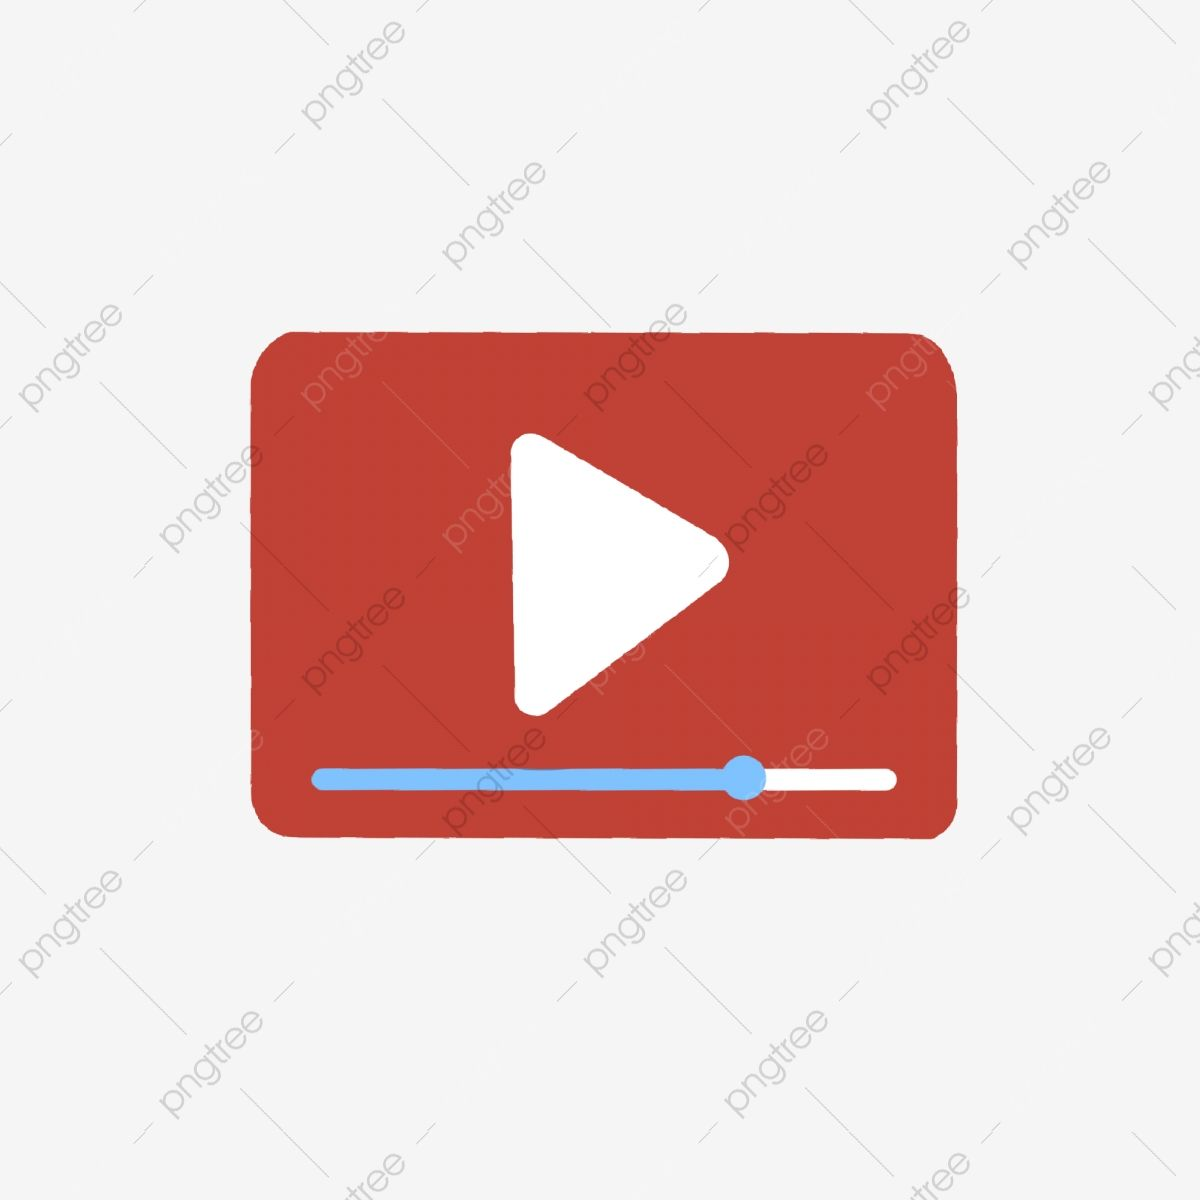 Red Video Play Button Logo Red Video Play Button Progress Logo Png Transparent Clipart Image And Psd File For Free Downloa Red Video Clipart Images Clip Art